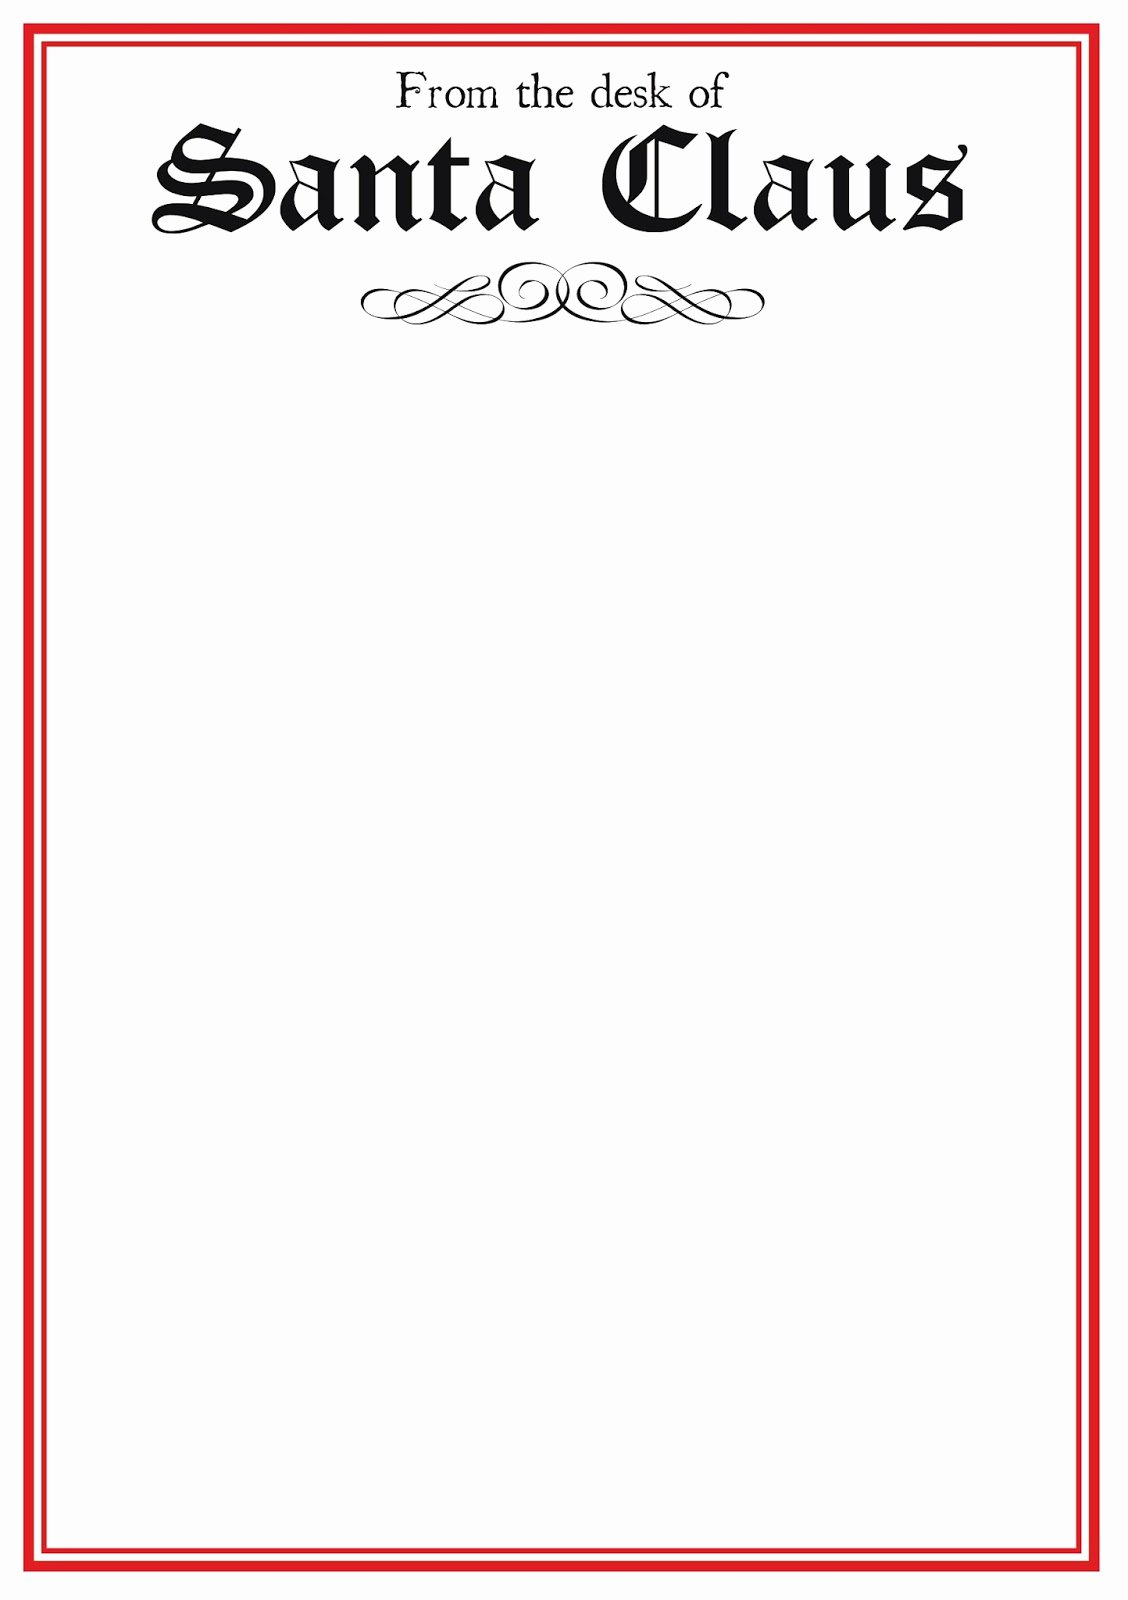 Letter From Santa Template Word Unique Free Printable Letter From Santa Template Word Download